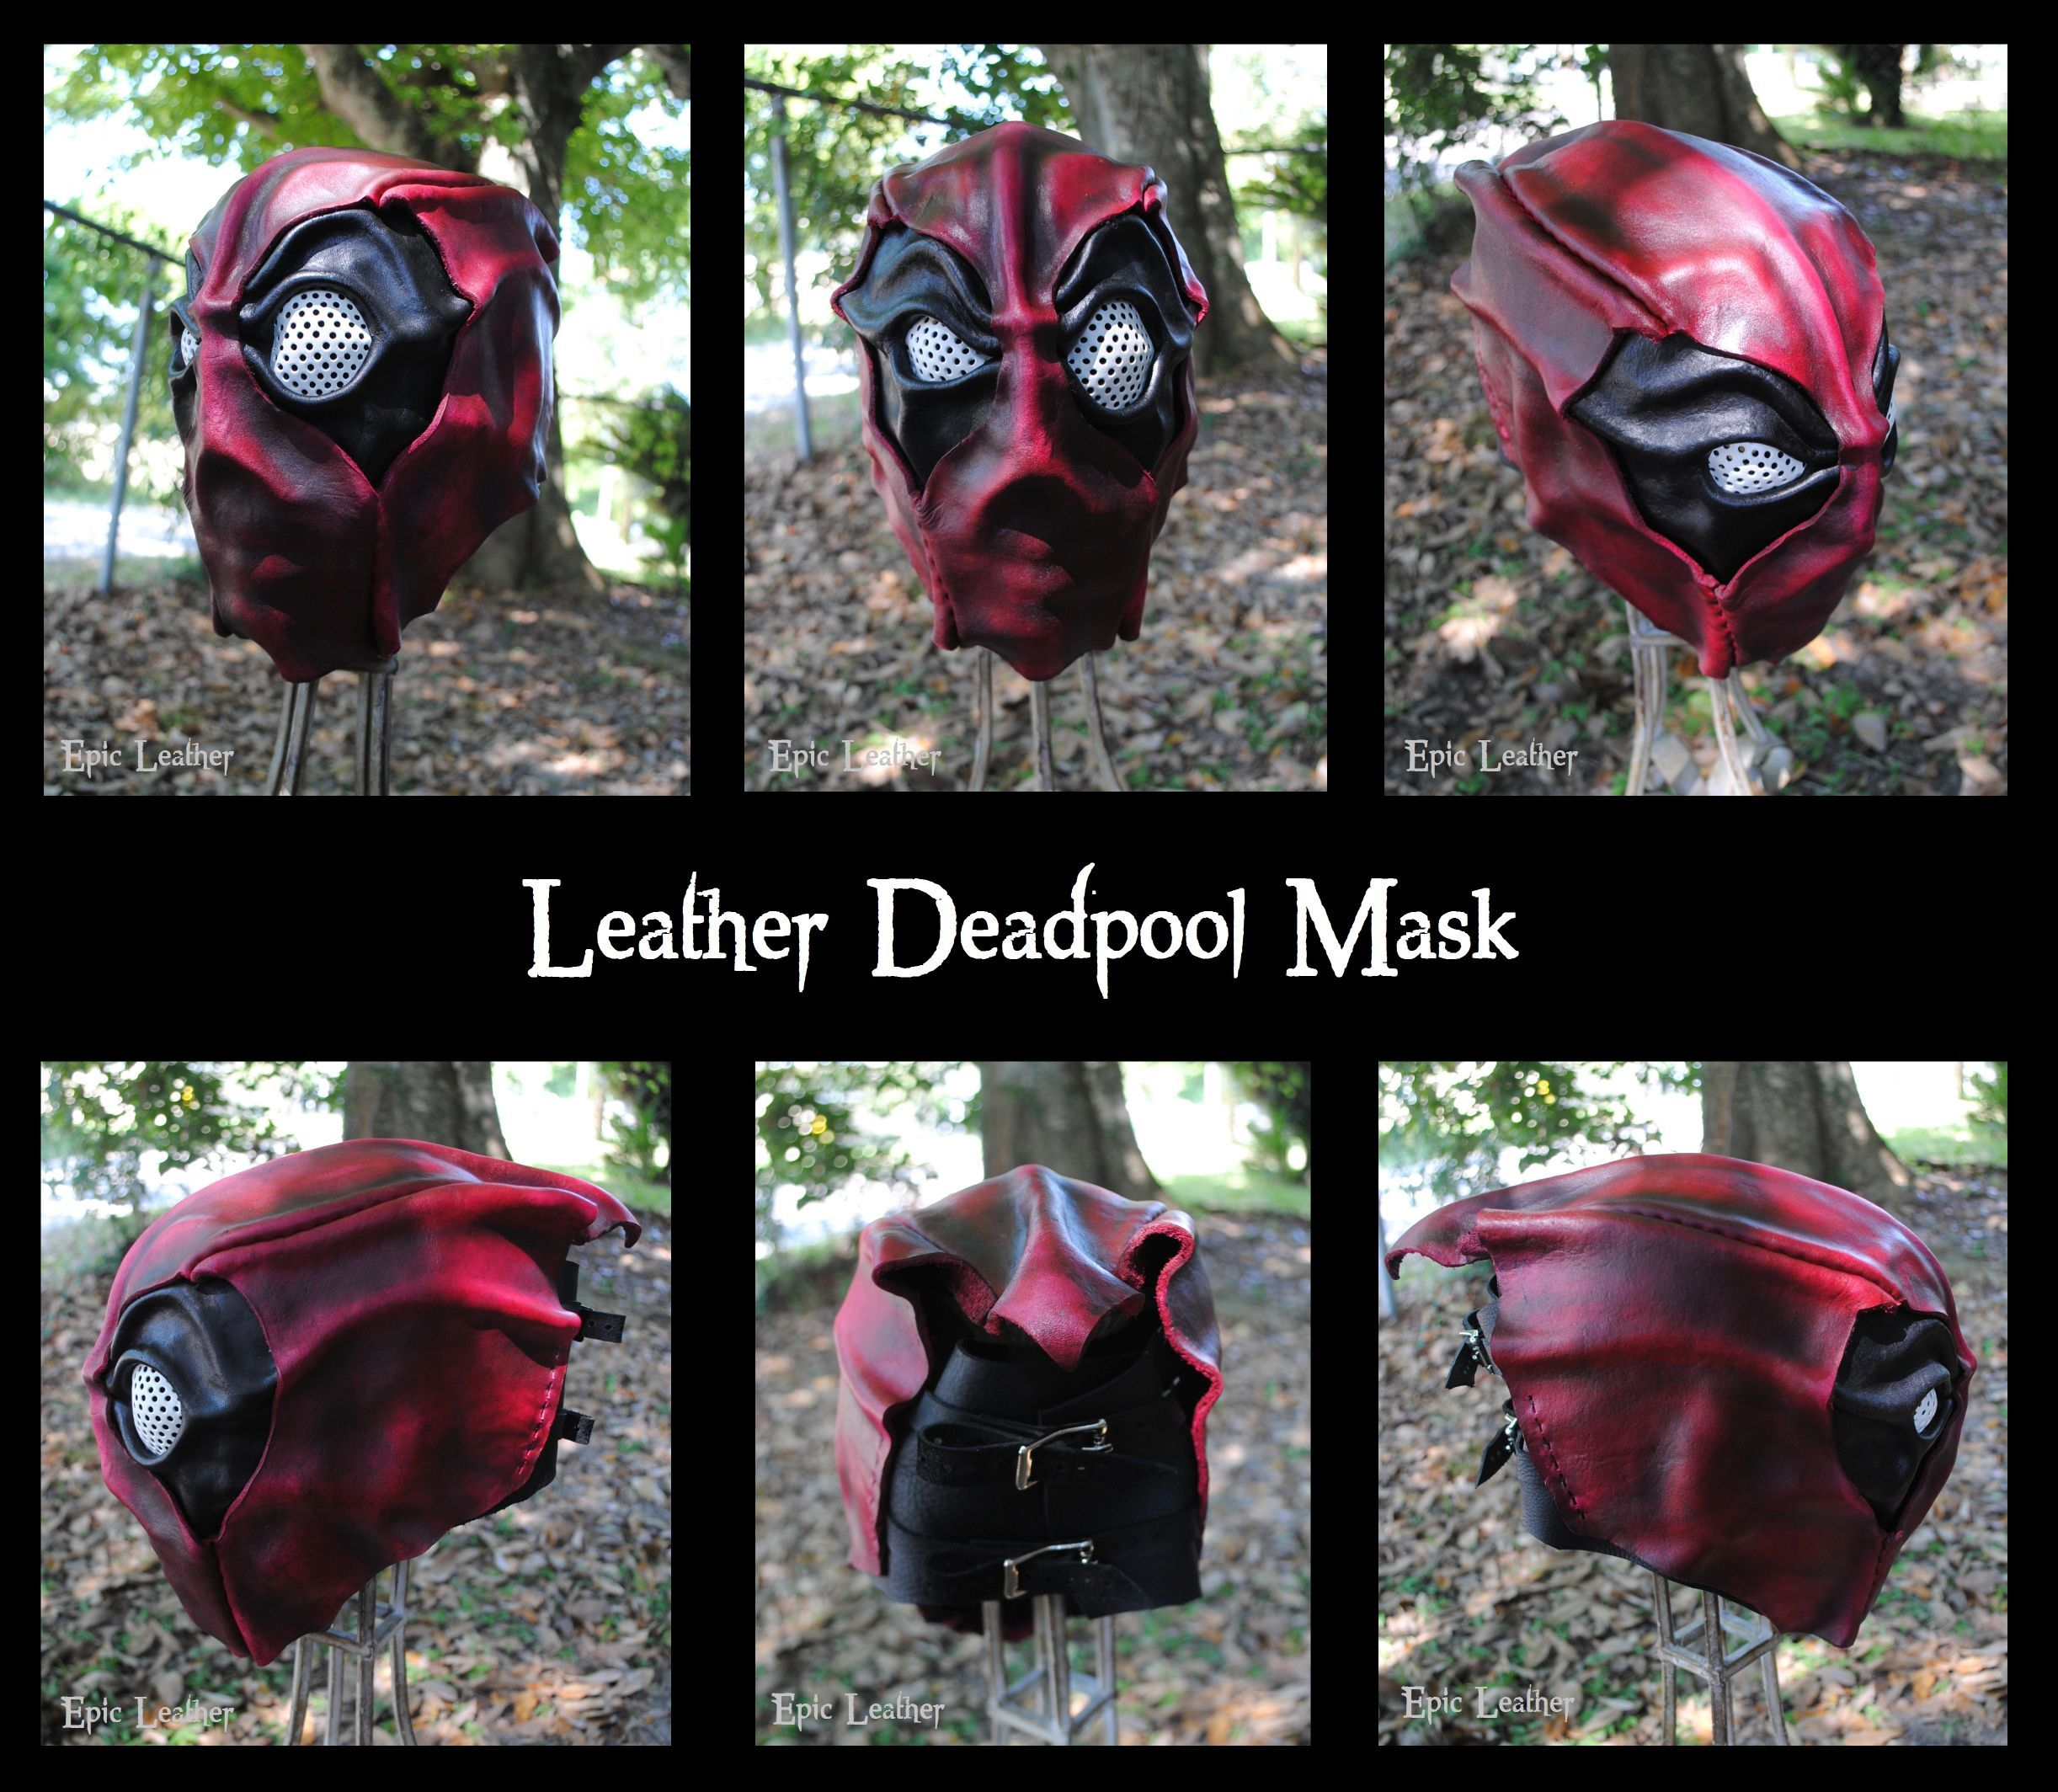 Full Leather Deadpool Mask by